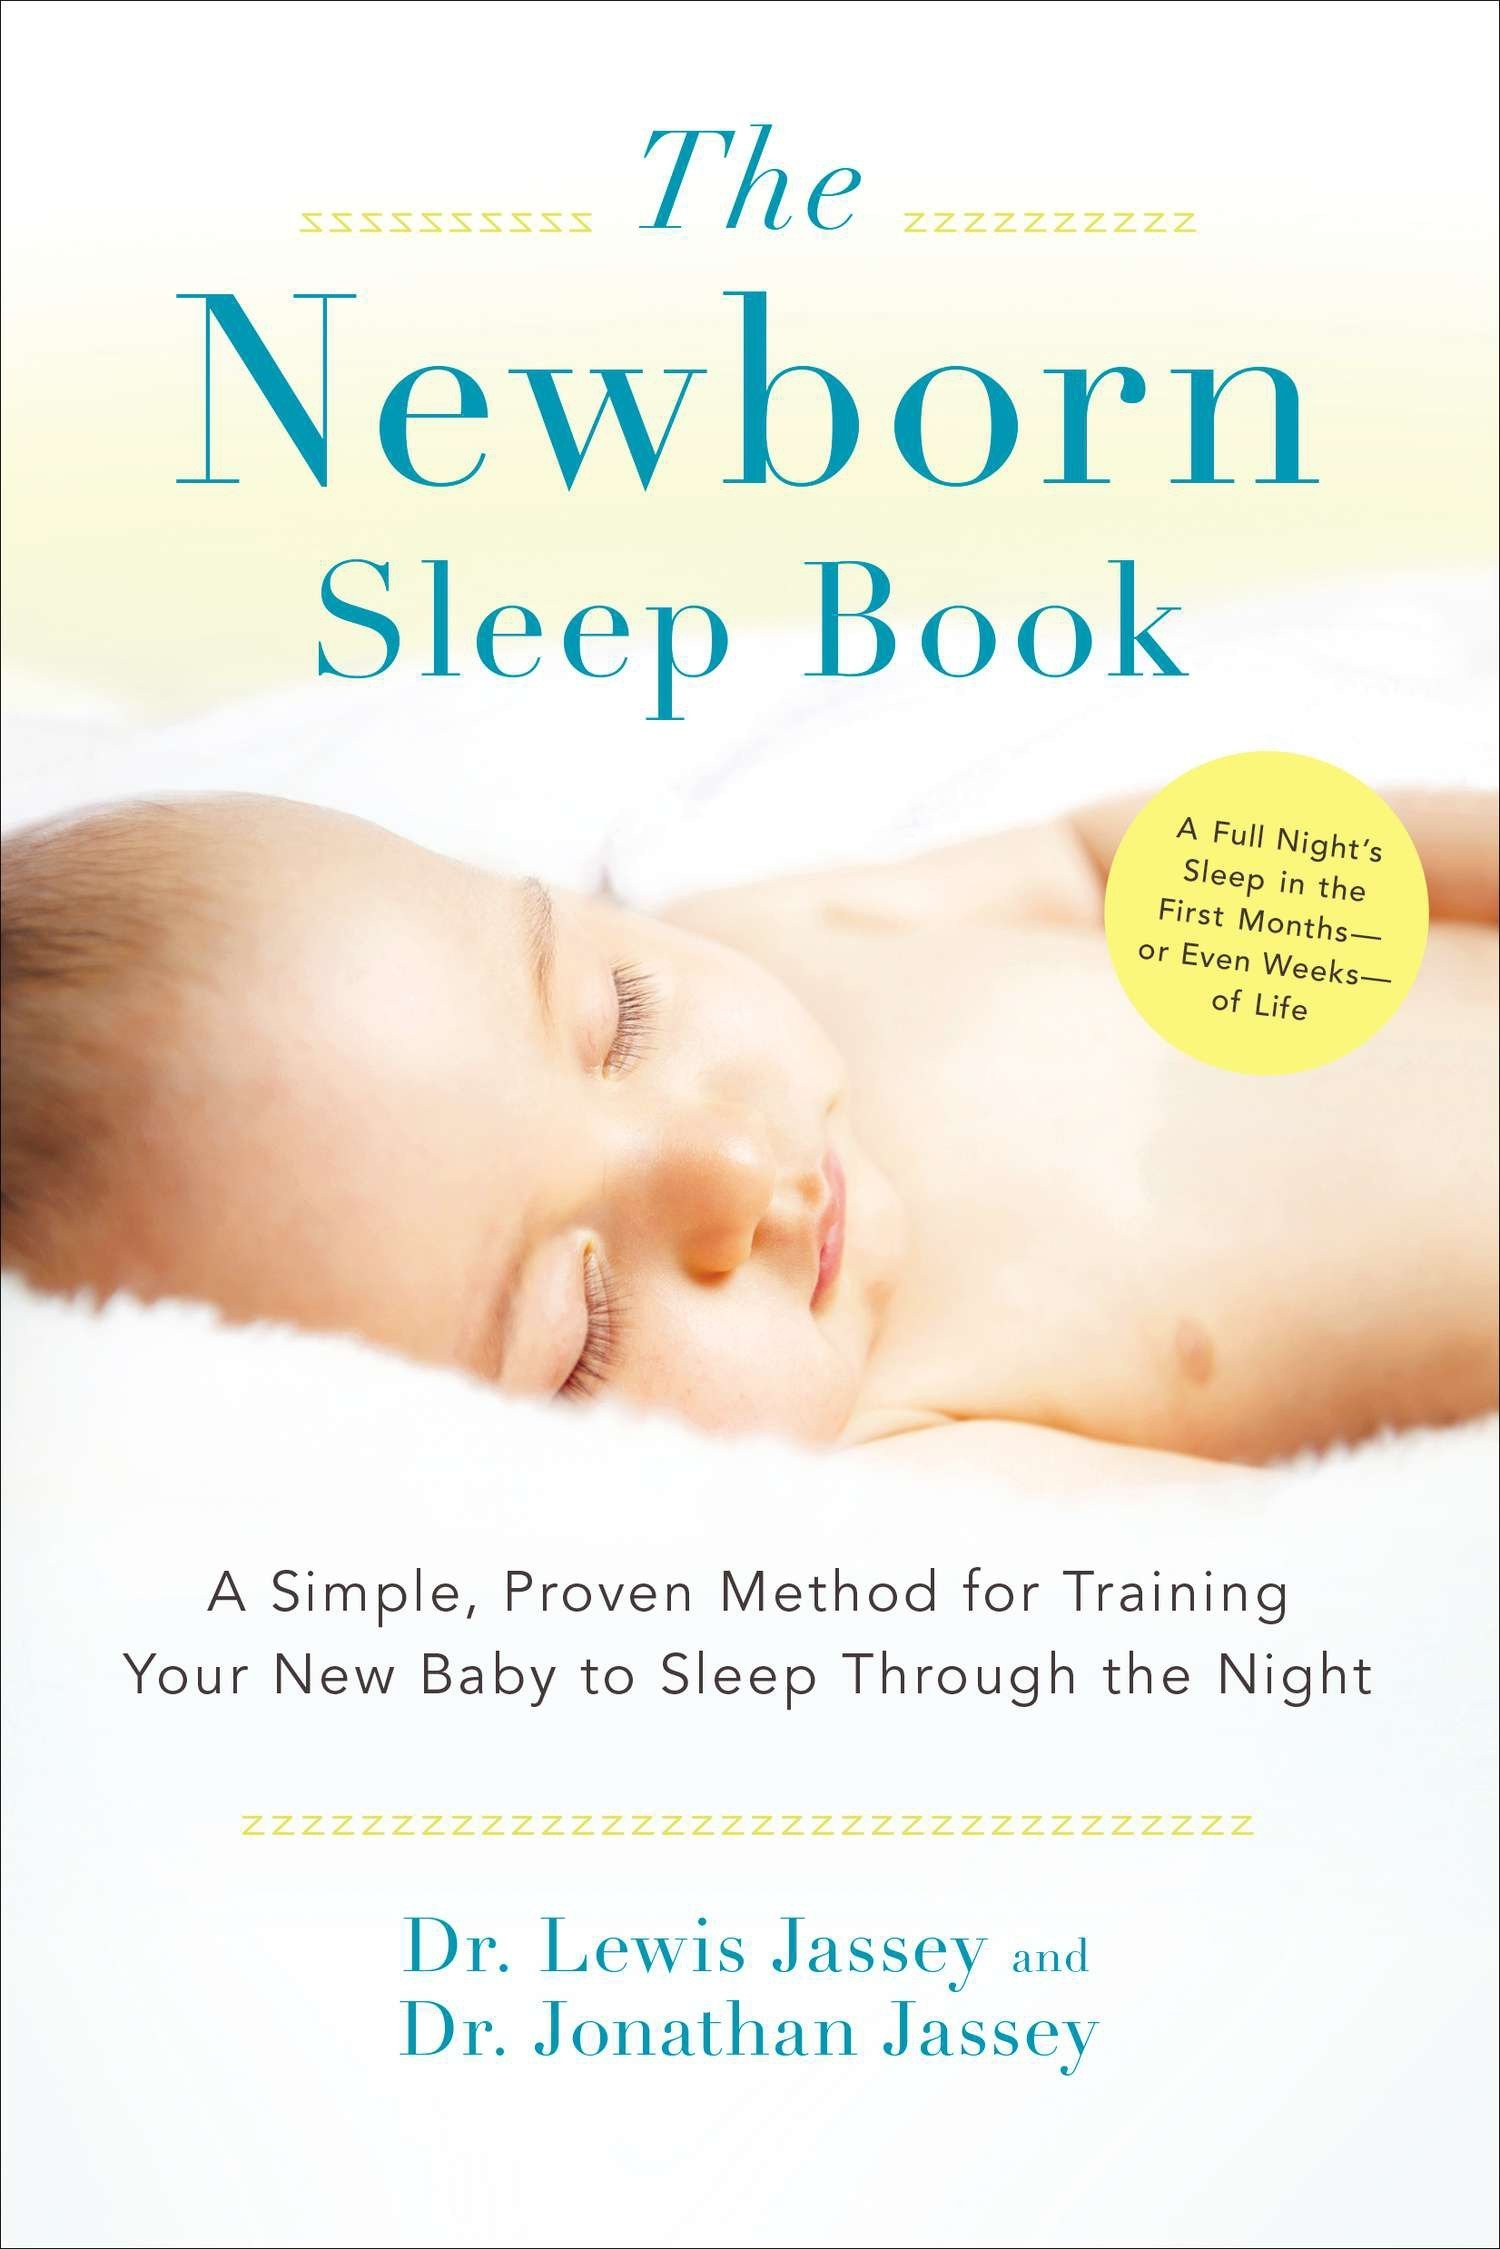 The Newborn Sleep Book: A Simple, Proven Method for Training Your New Baby to Sleep Through the Night